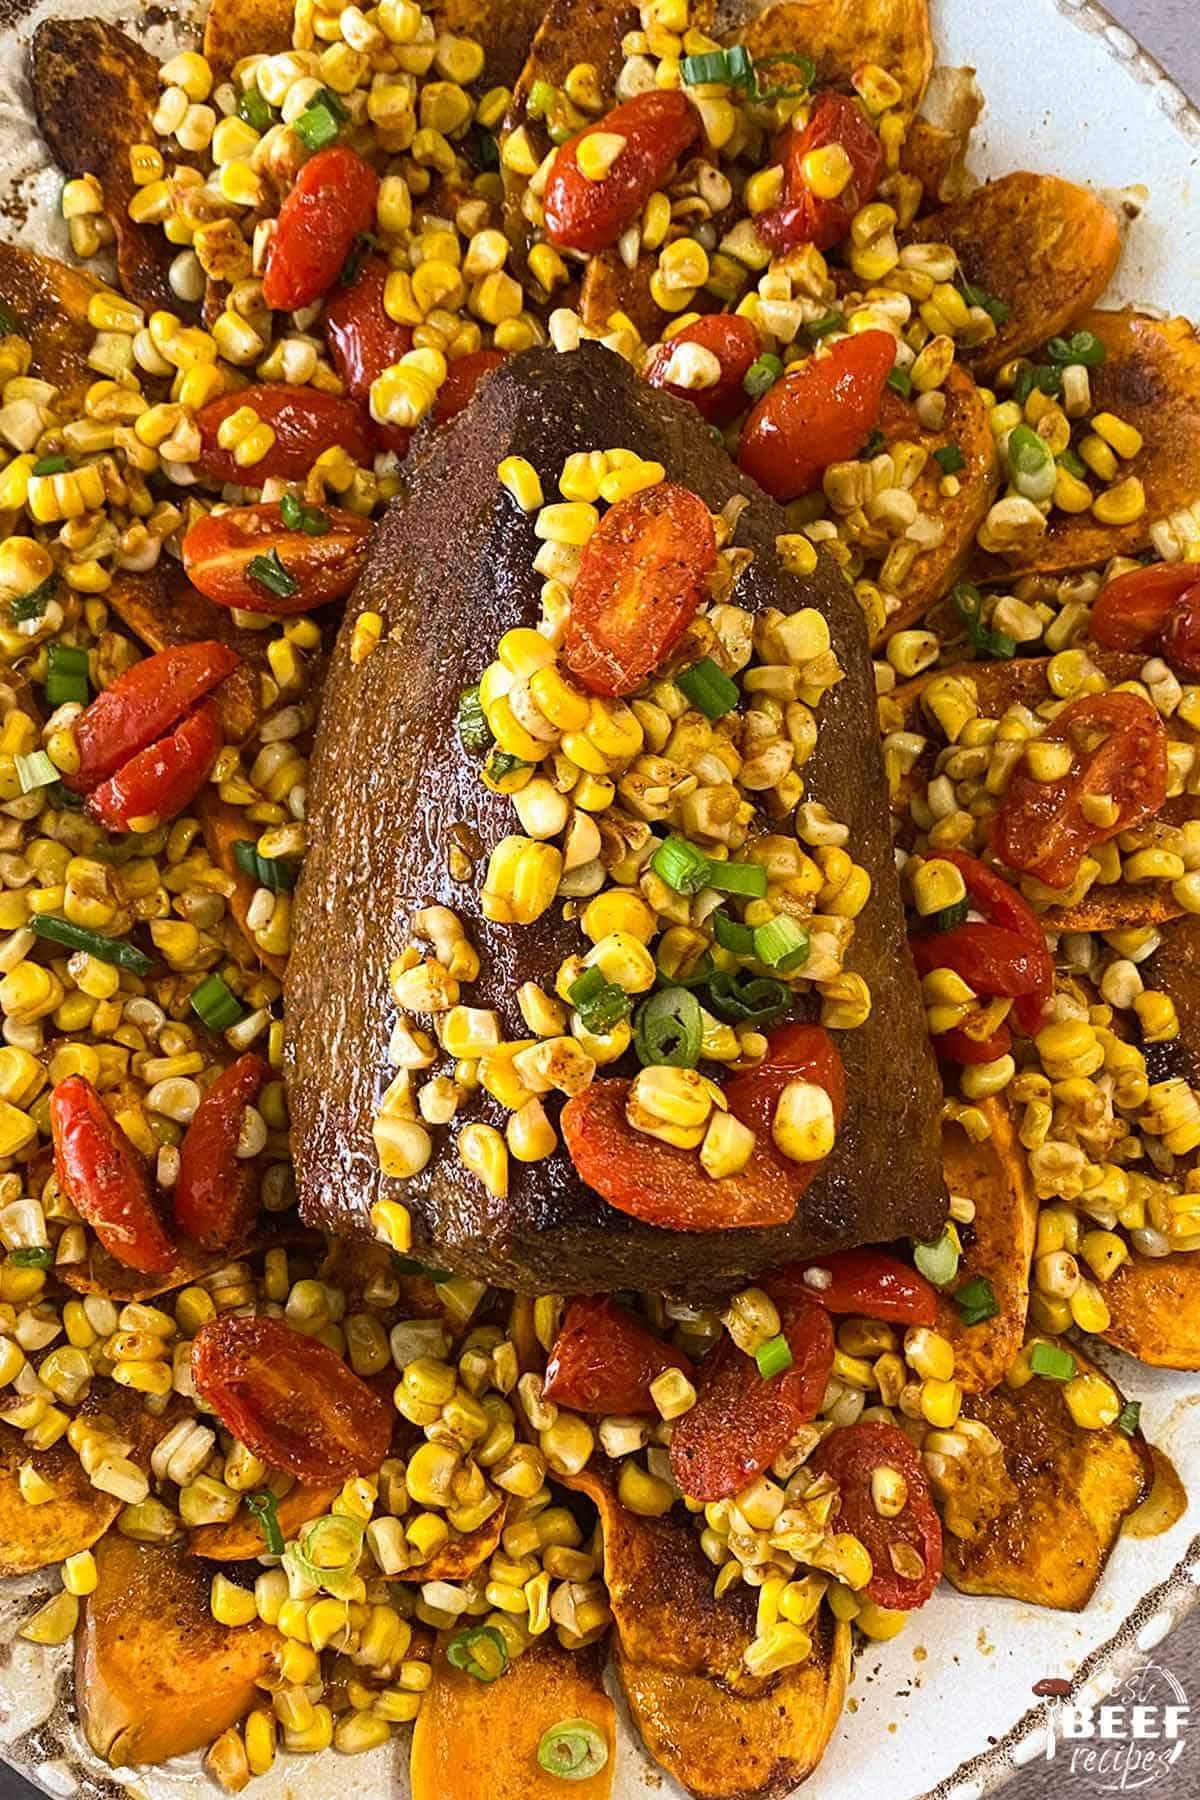 Eye round roast on a bed of sweet potatoes with corn and tomatoes